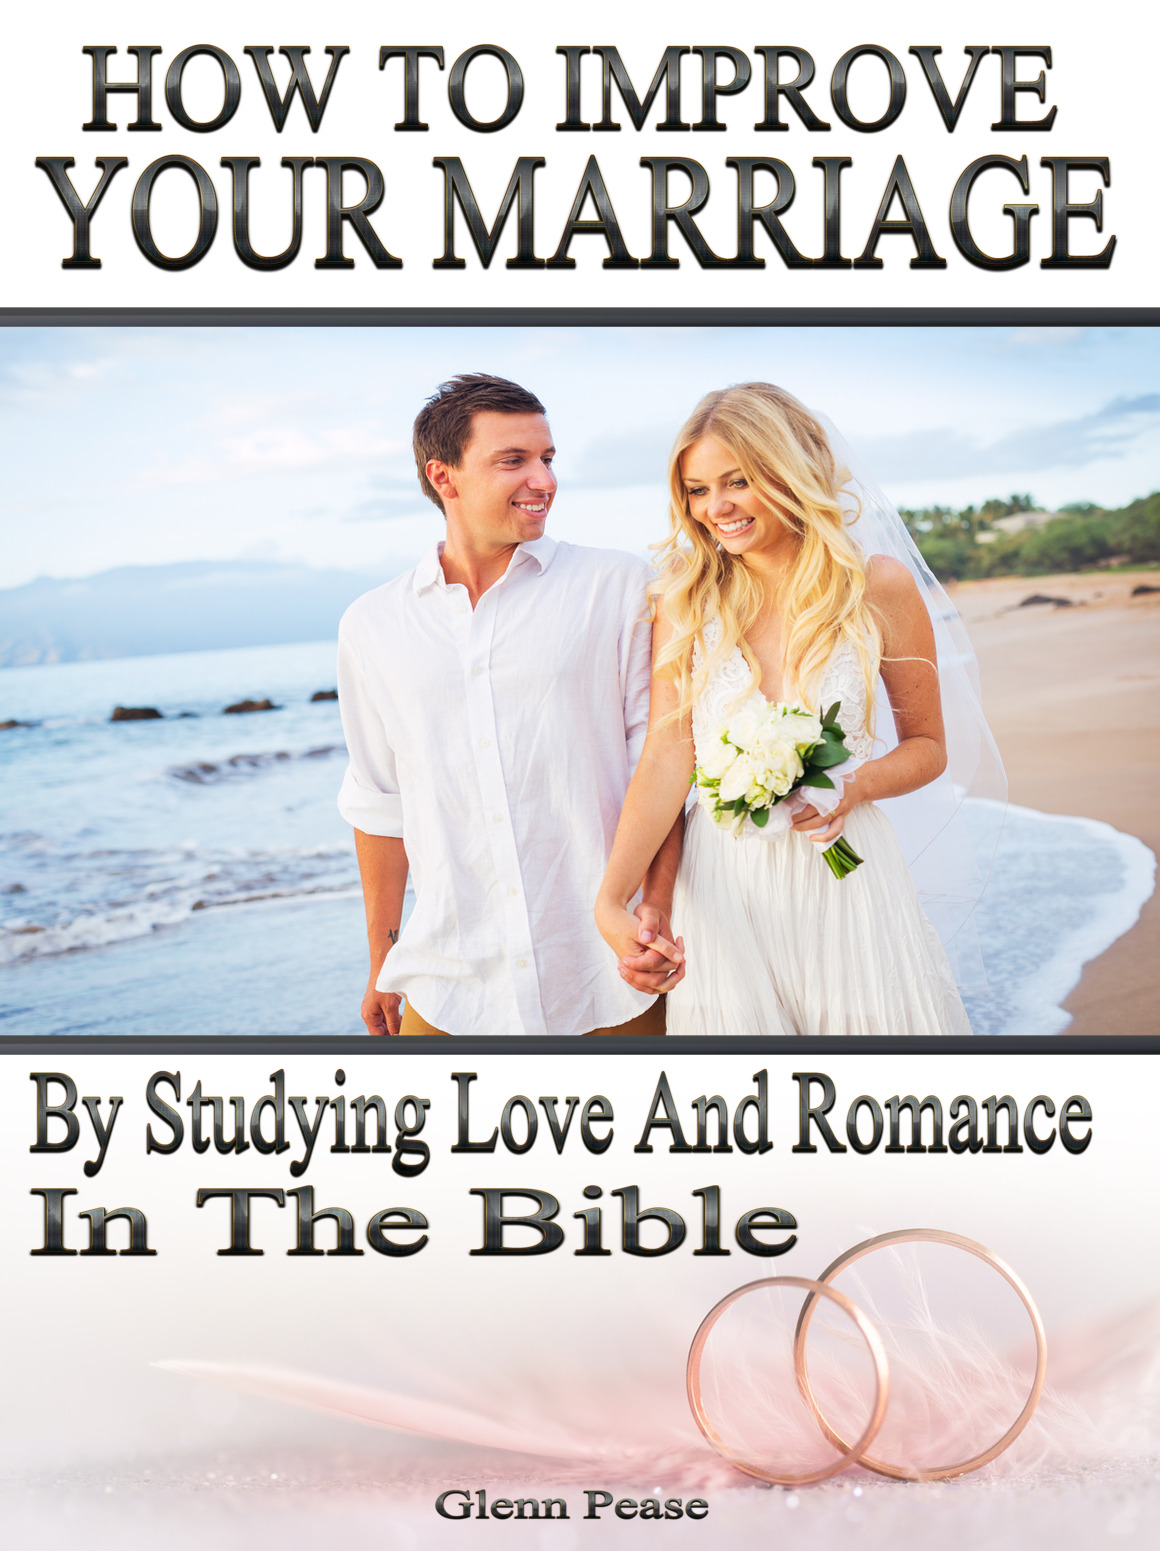 HELP YOUR MARRIAGE